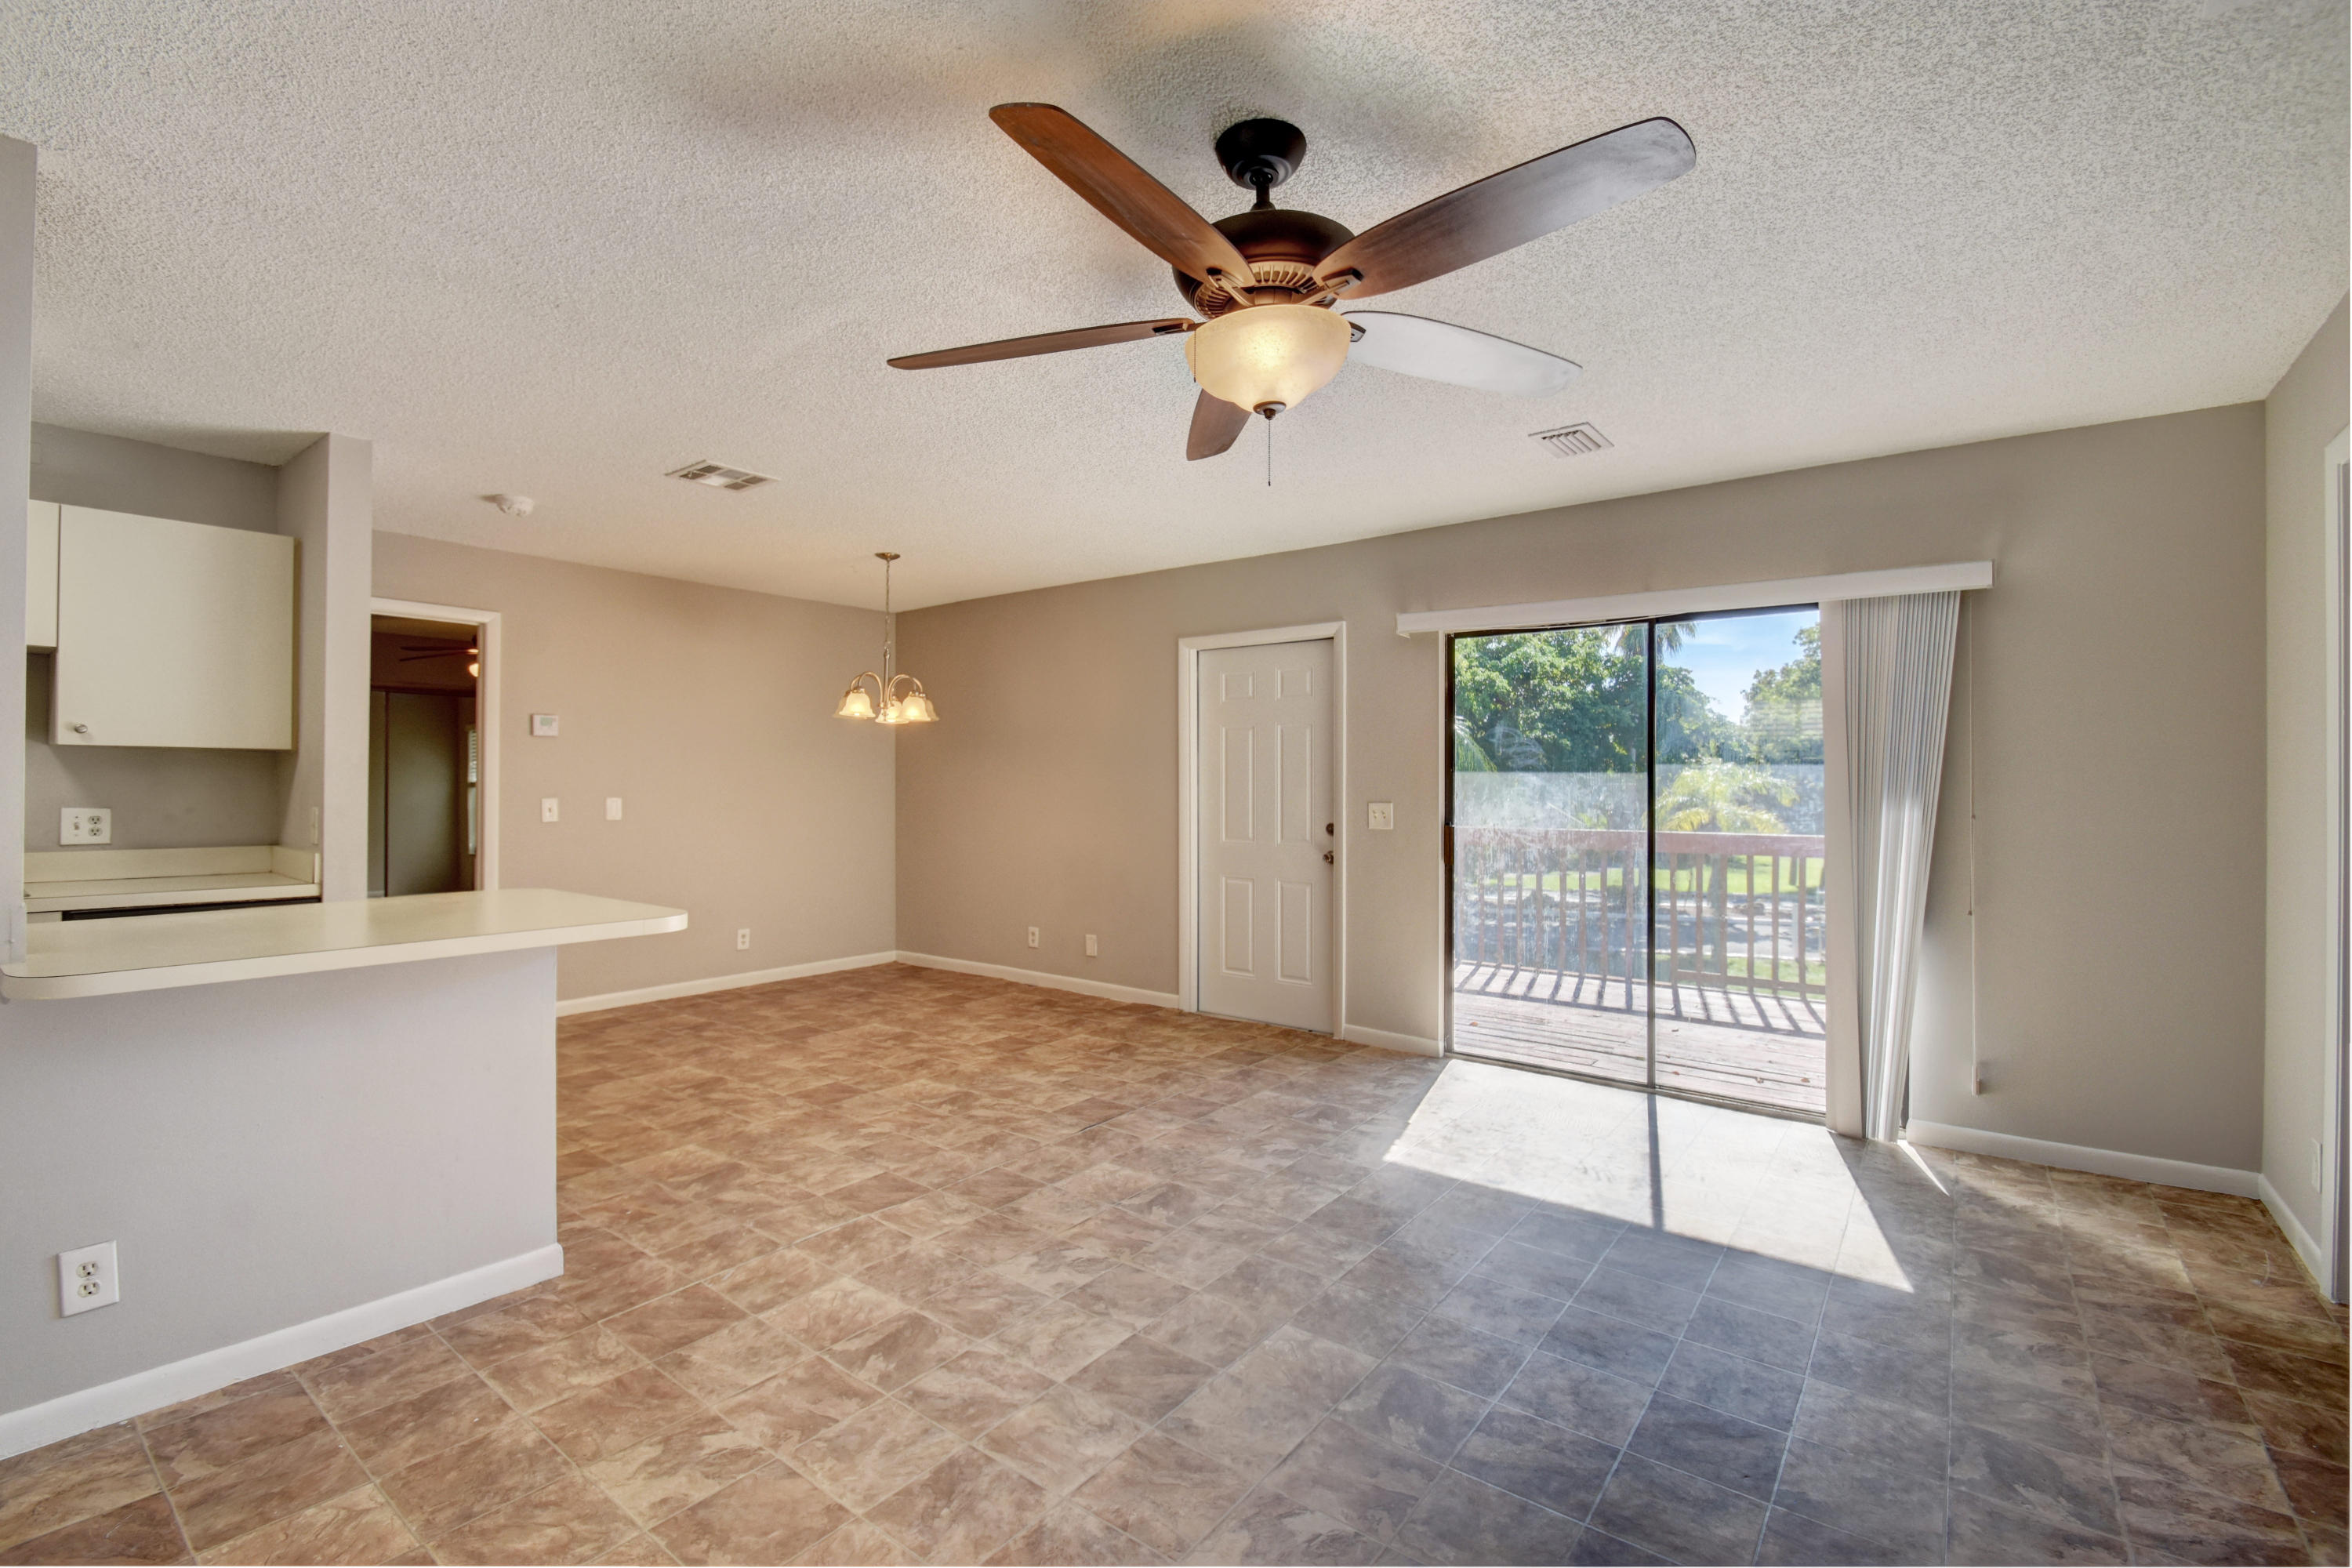 480 Horizons Boynton Beach 33435 - photo